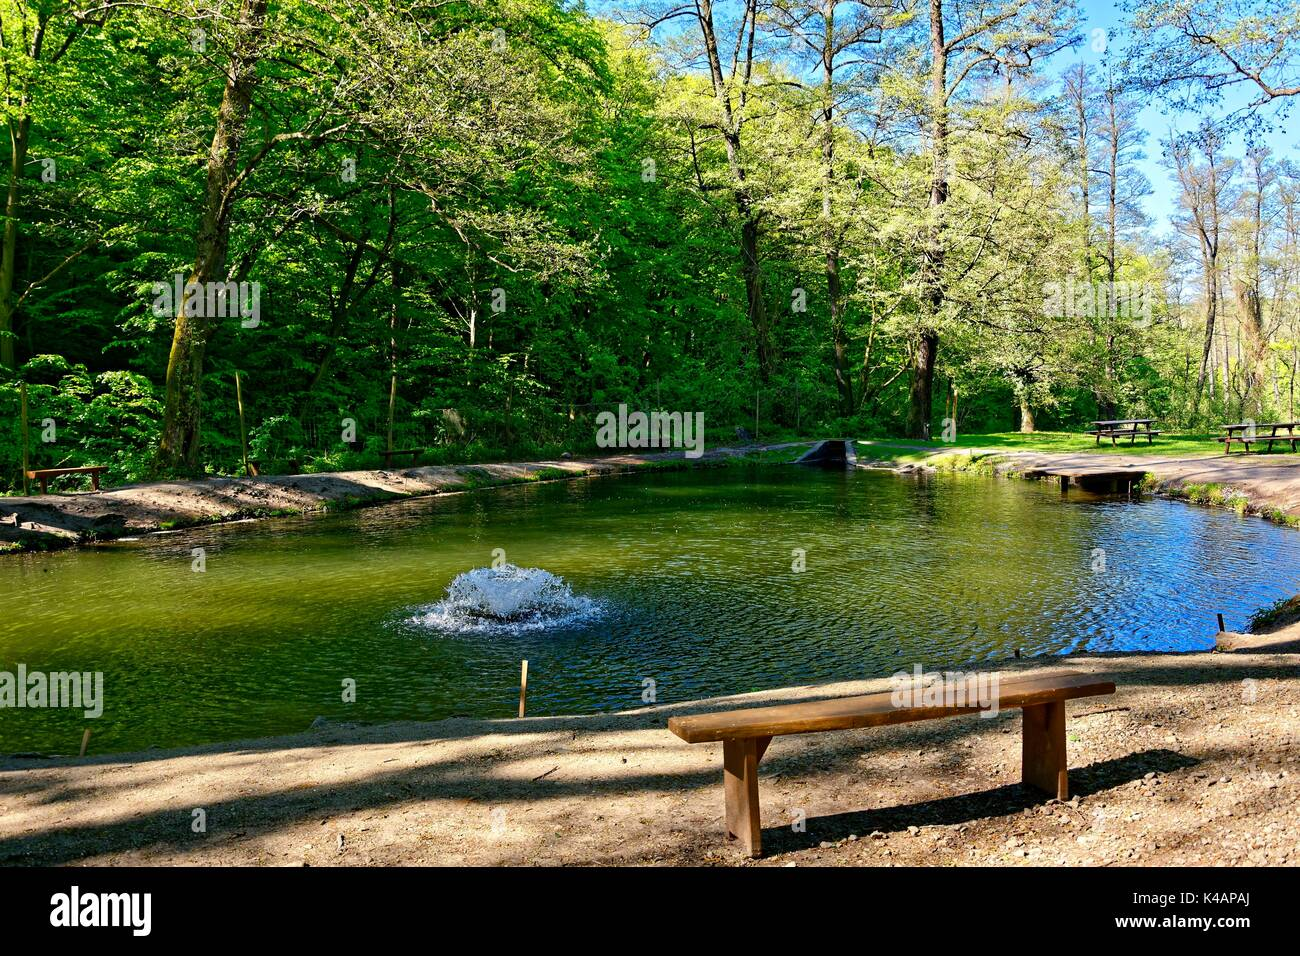 Trout pond stock photos trout pond stock images alamy for Stocked fishing ponds near me